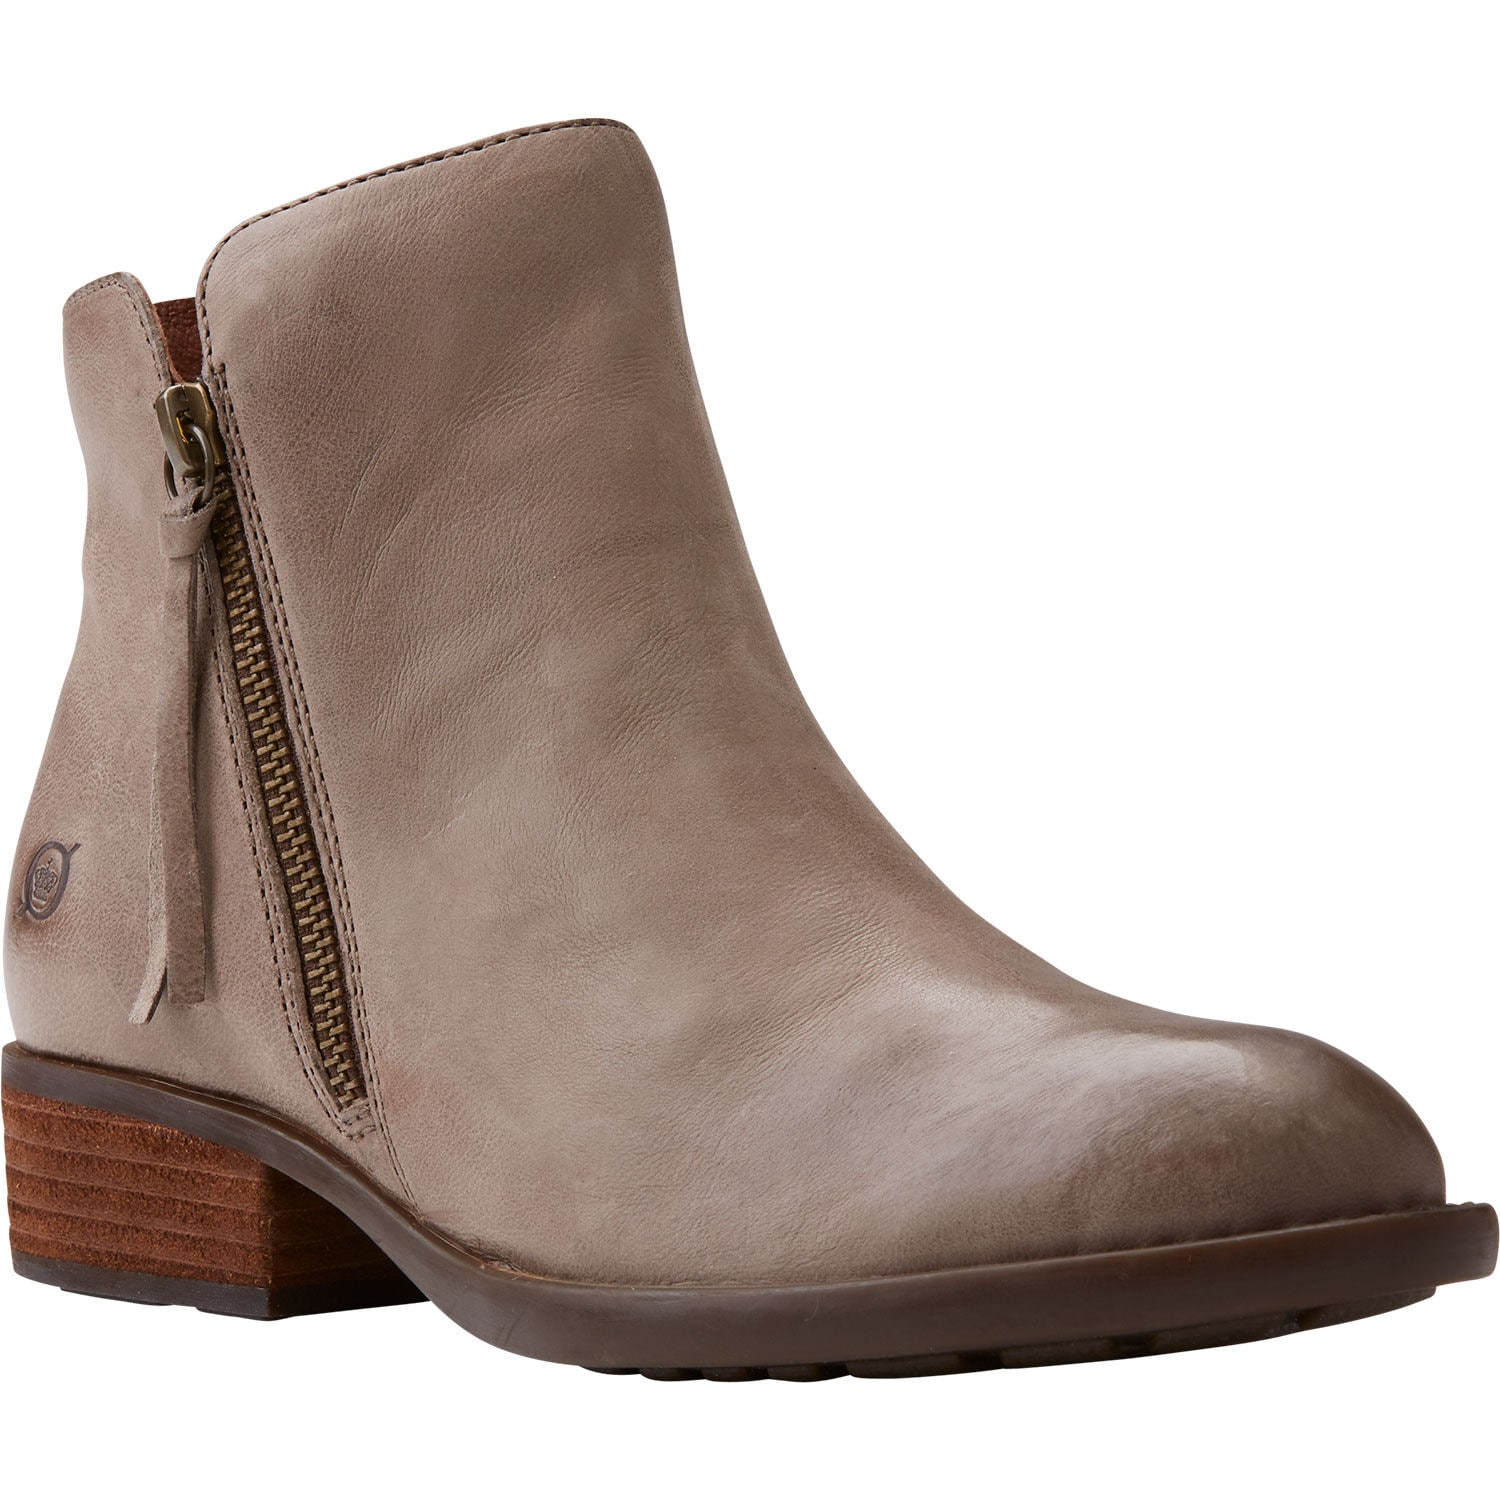 Women's Born Olio Ankle Boots   Duluth